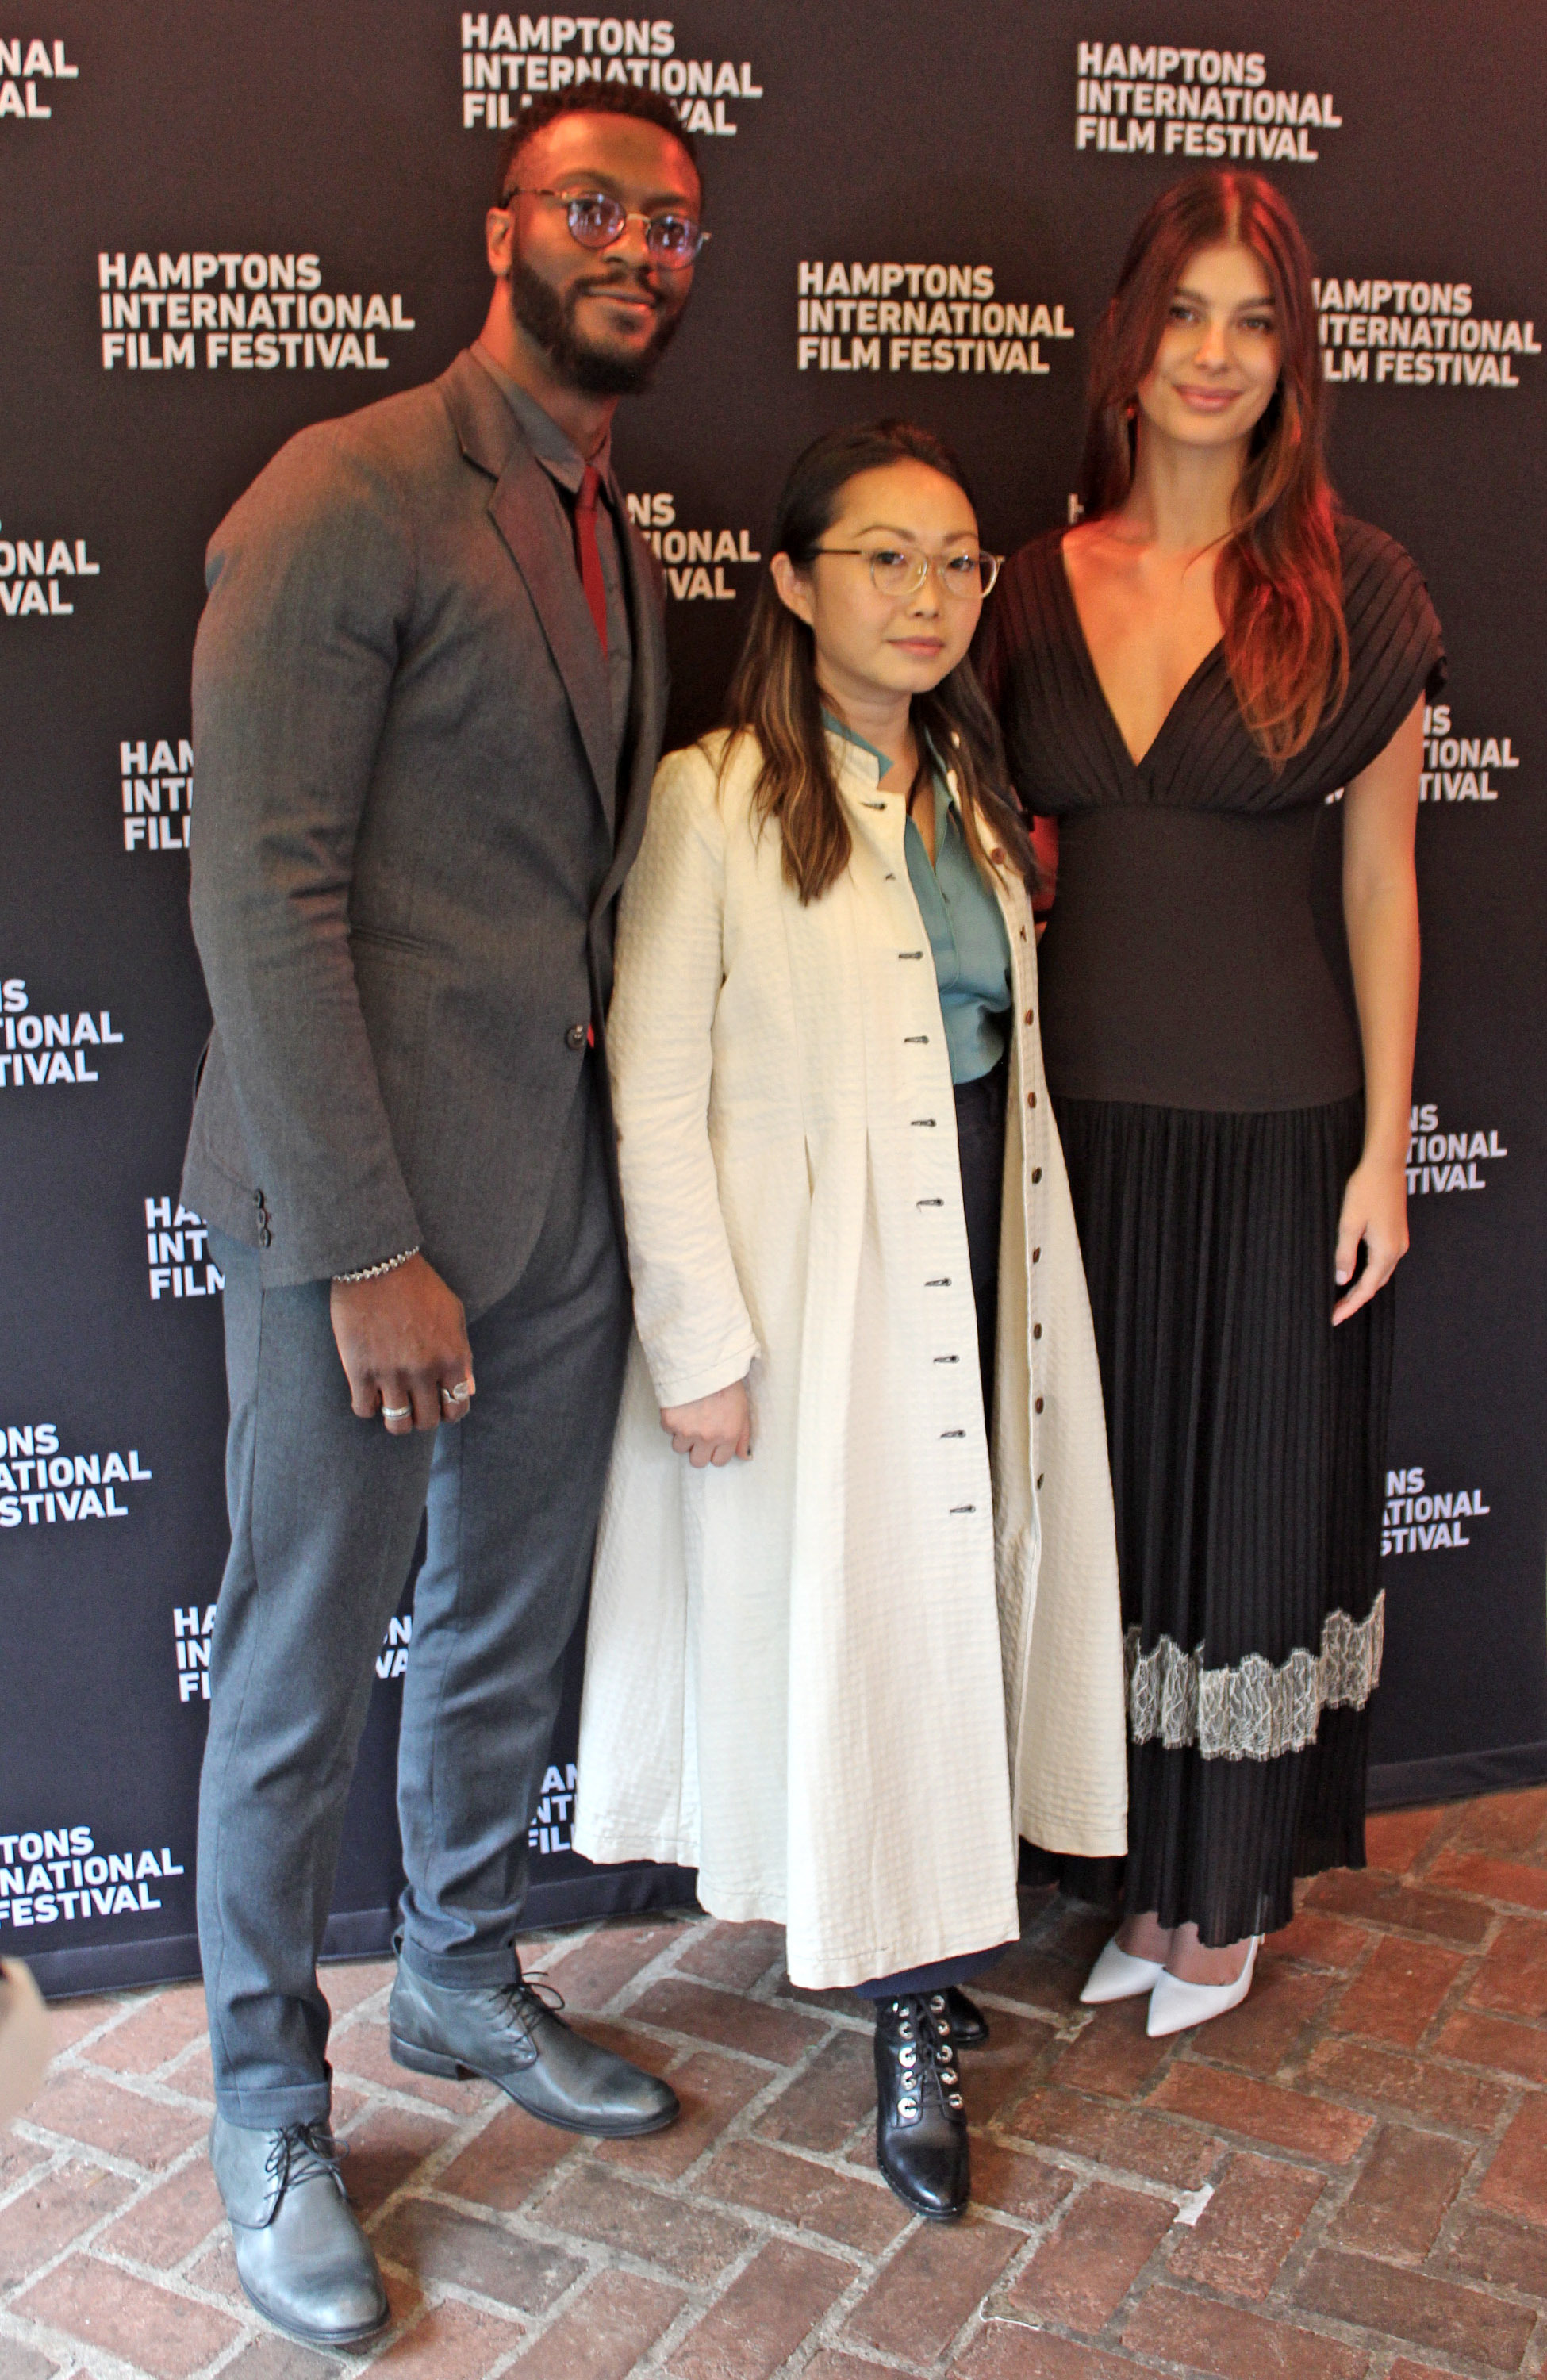 HIFF 2019 Breakthrough Artists, from left, Aldis Hodge, Lulu Wang, and Camilla Marrone.